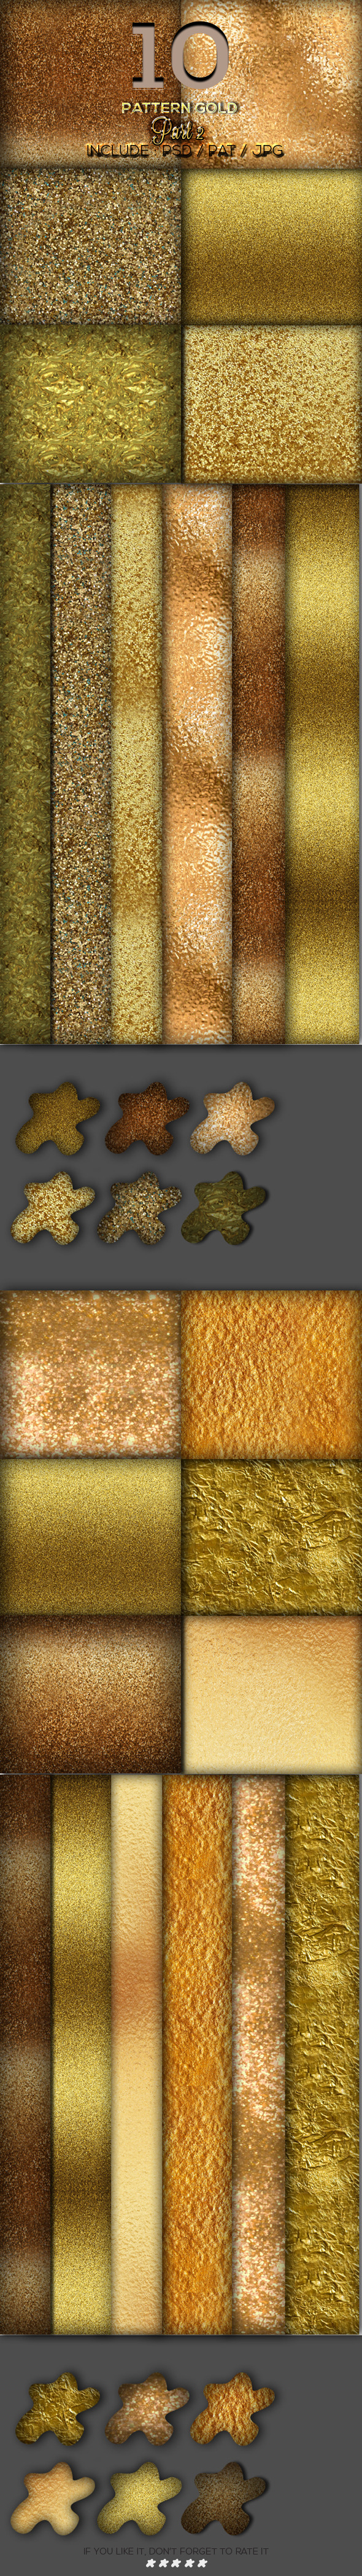 10 Gold Pattern Part 2 10 Gold Pattern Part 2  - Textures / Fills / Patterns Photoshop